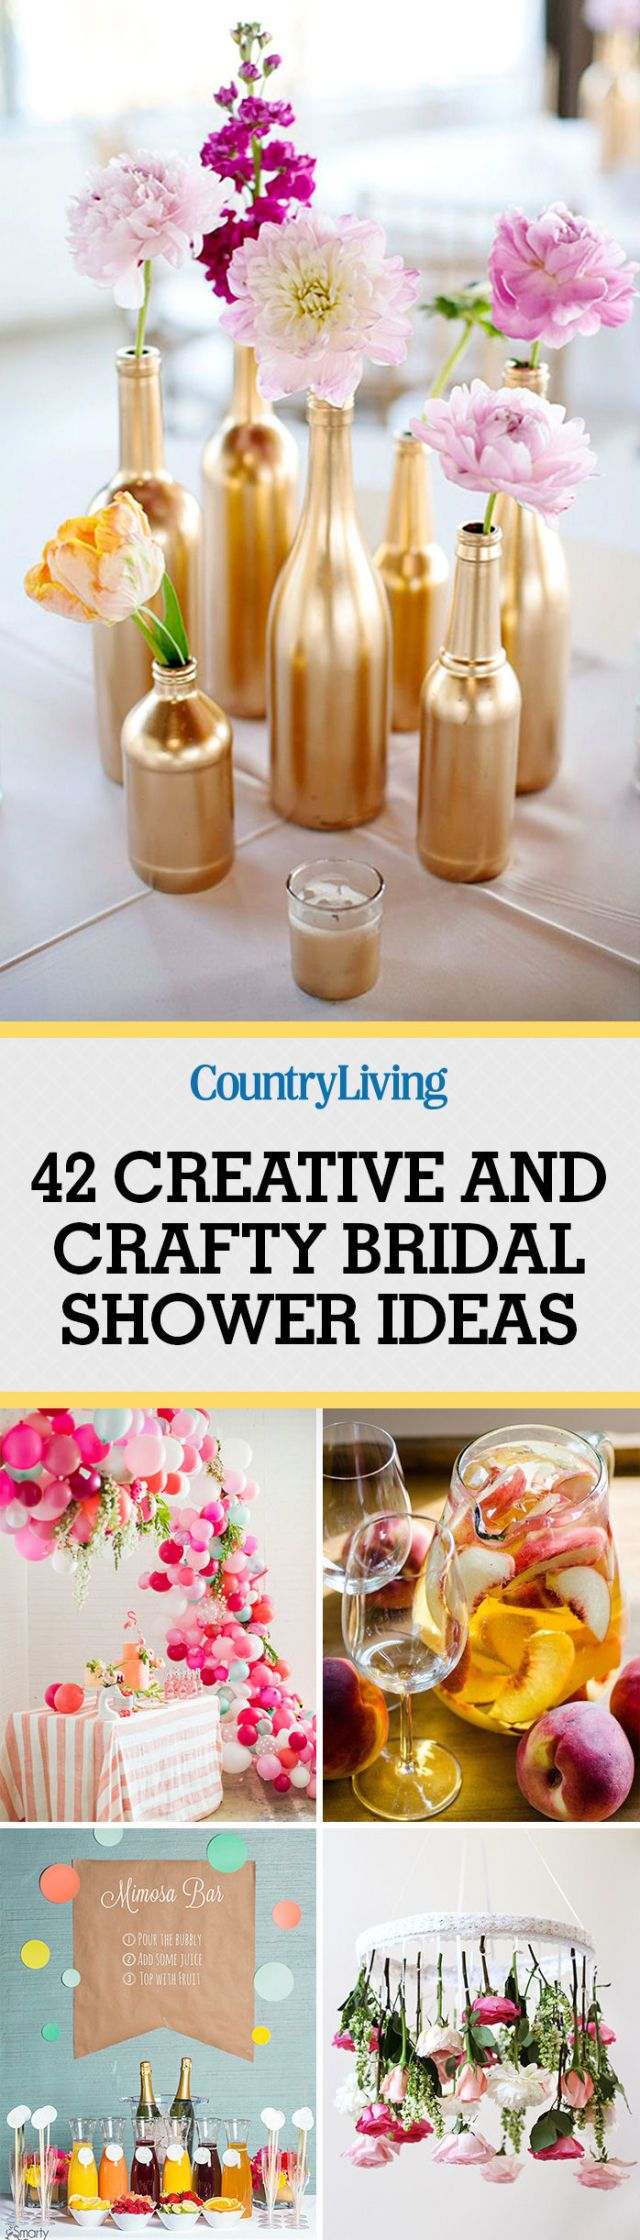 55 best bridal shower ideas fun themes food and decorating ideas for wedding showers - Bridal shower themes ...